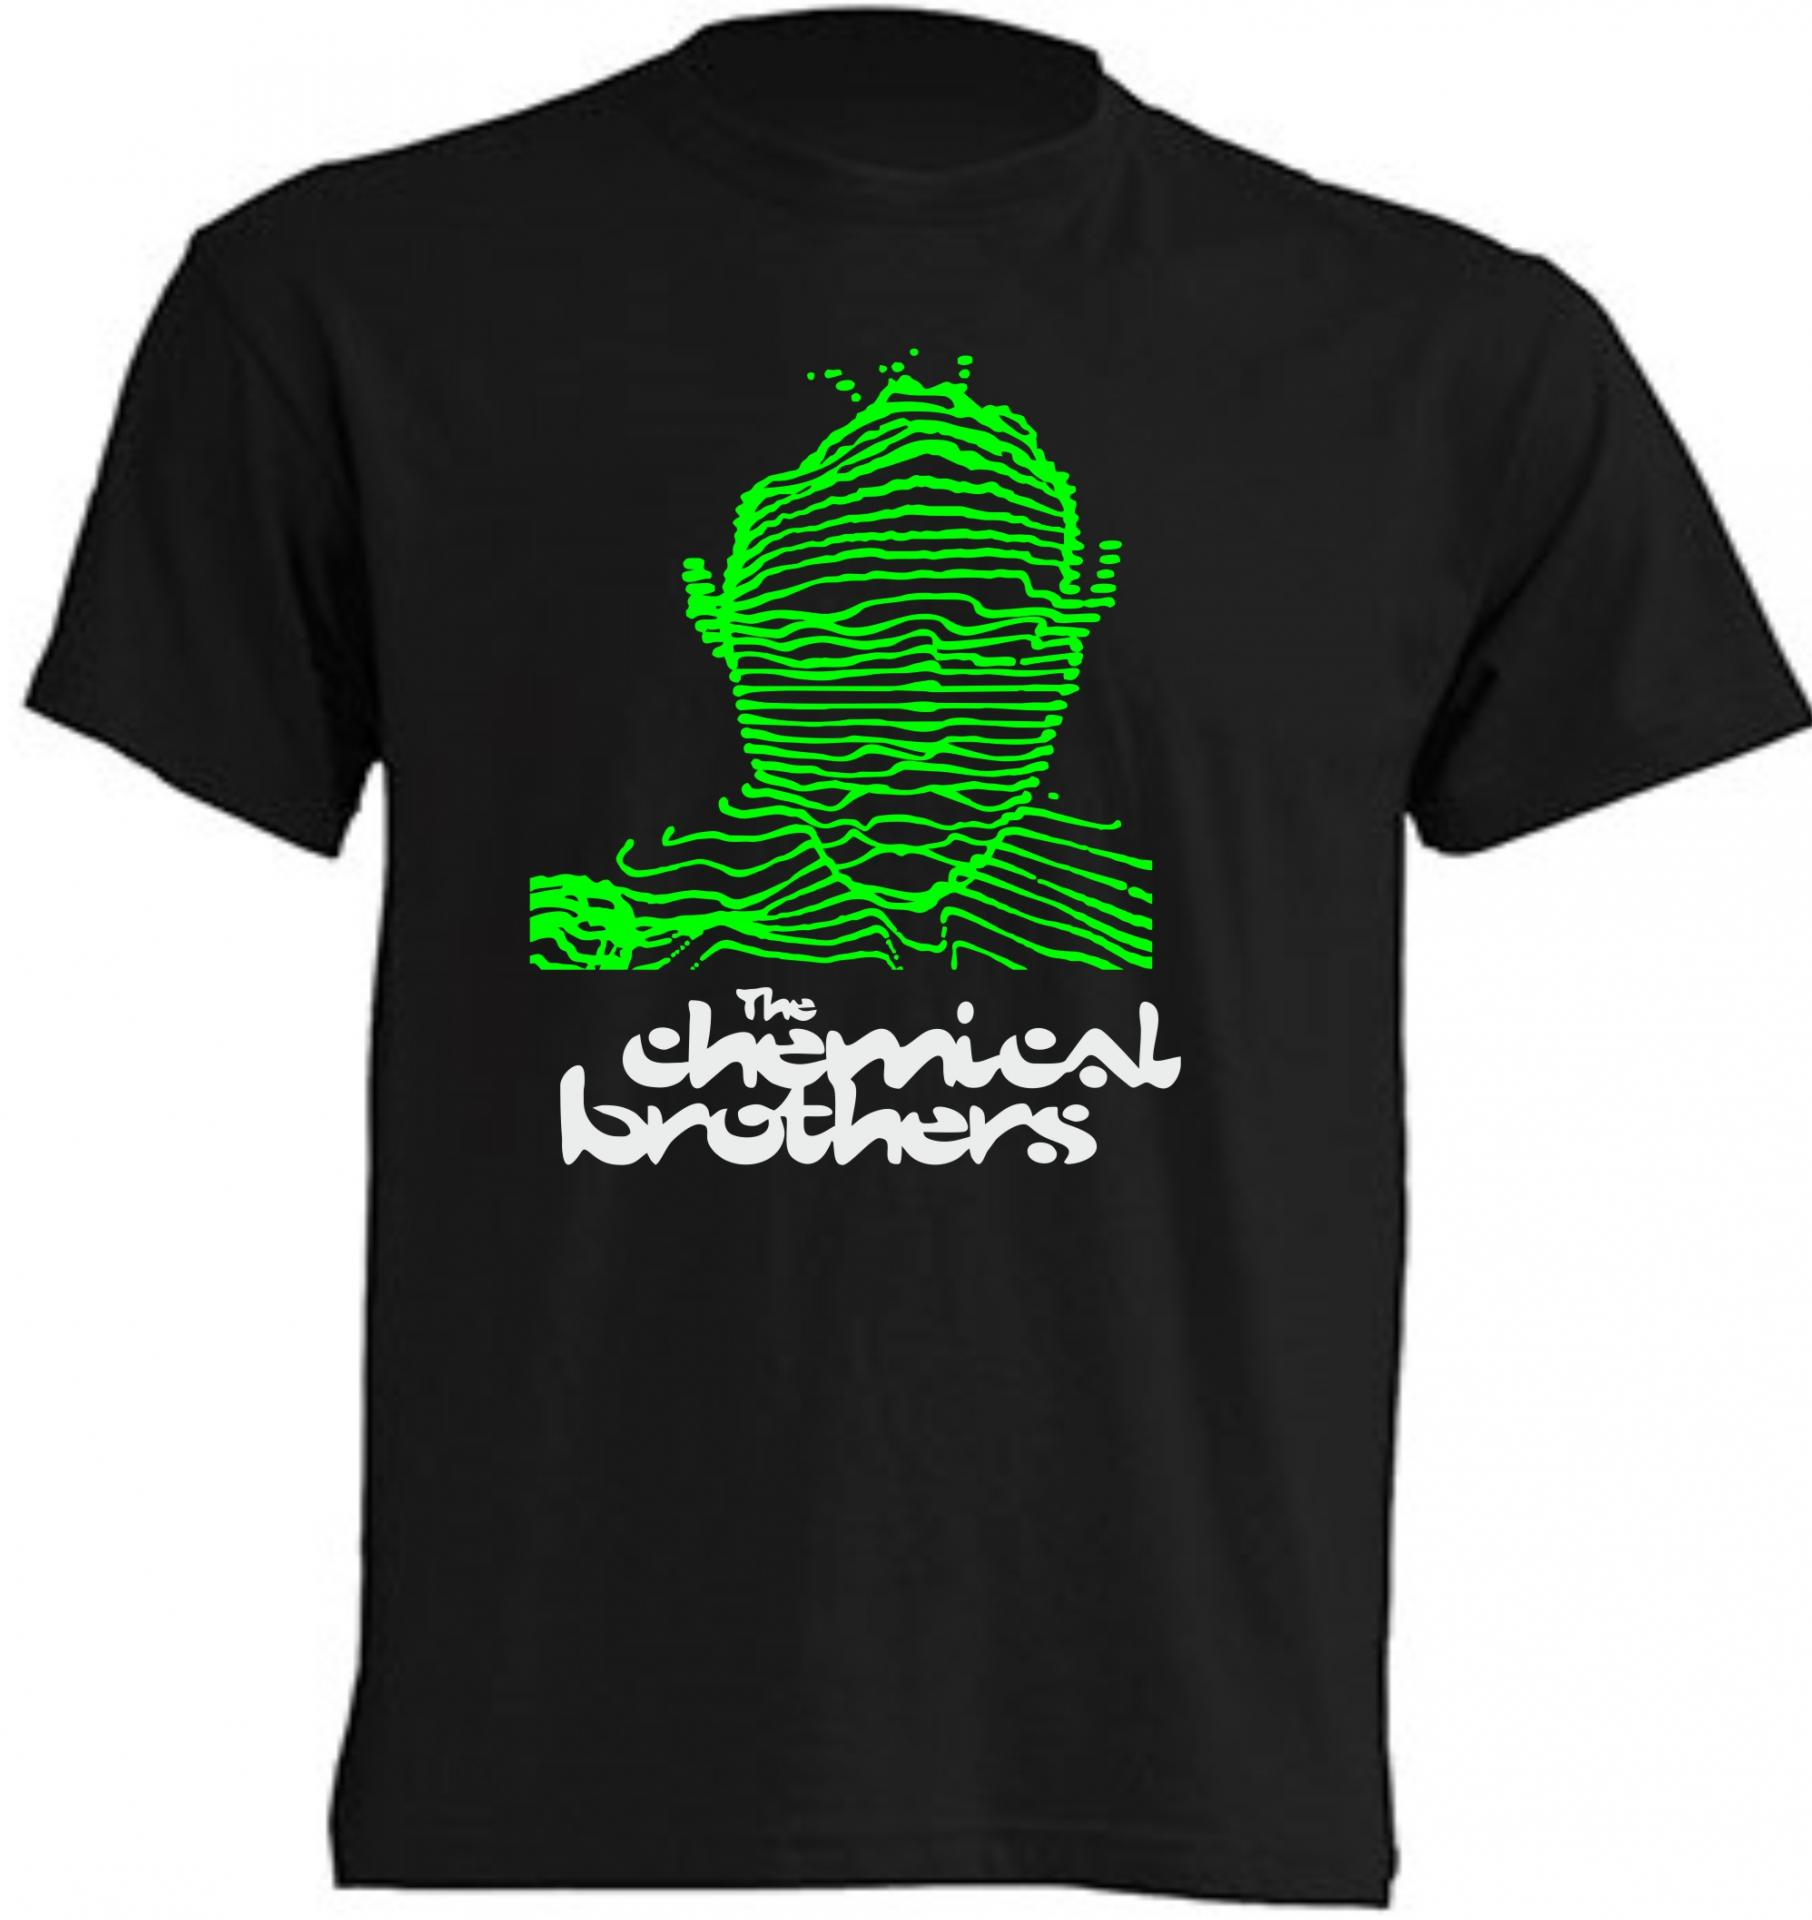 thechemicalbrothers2.jpg